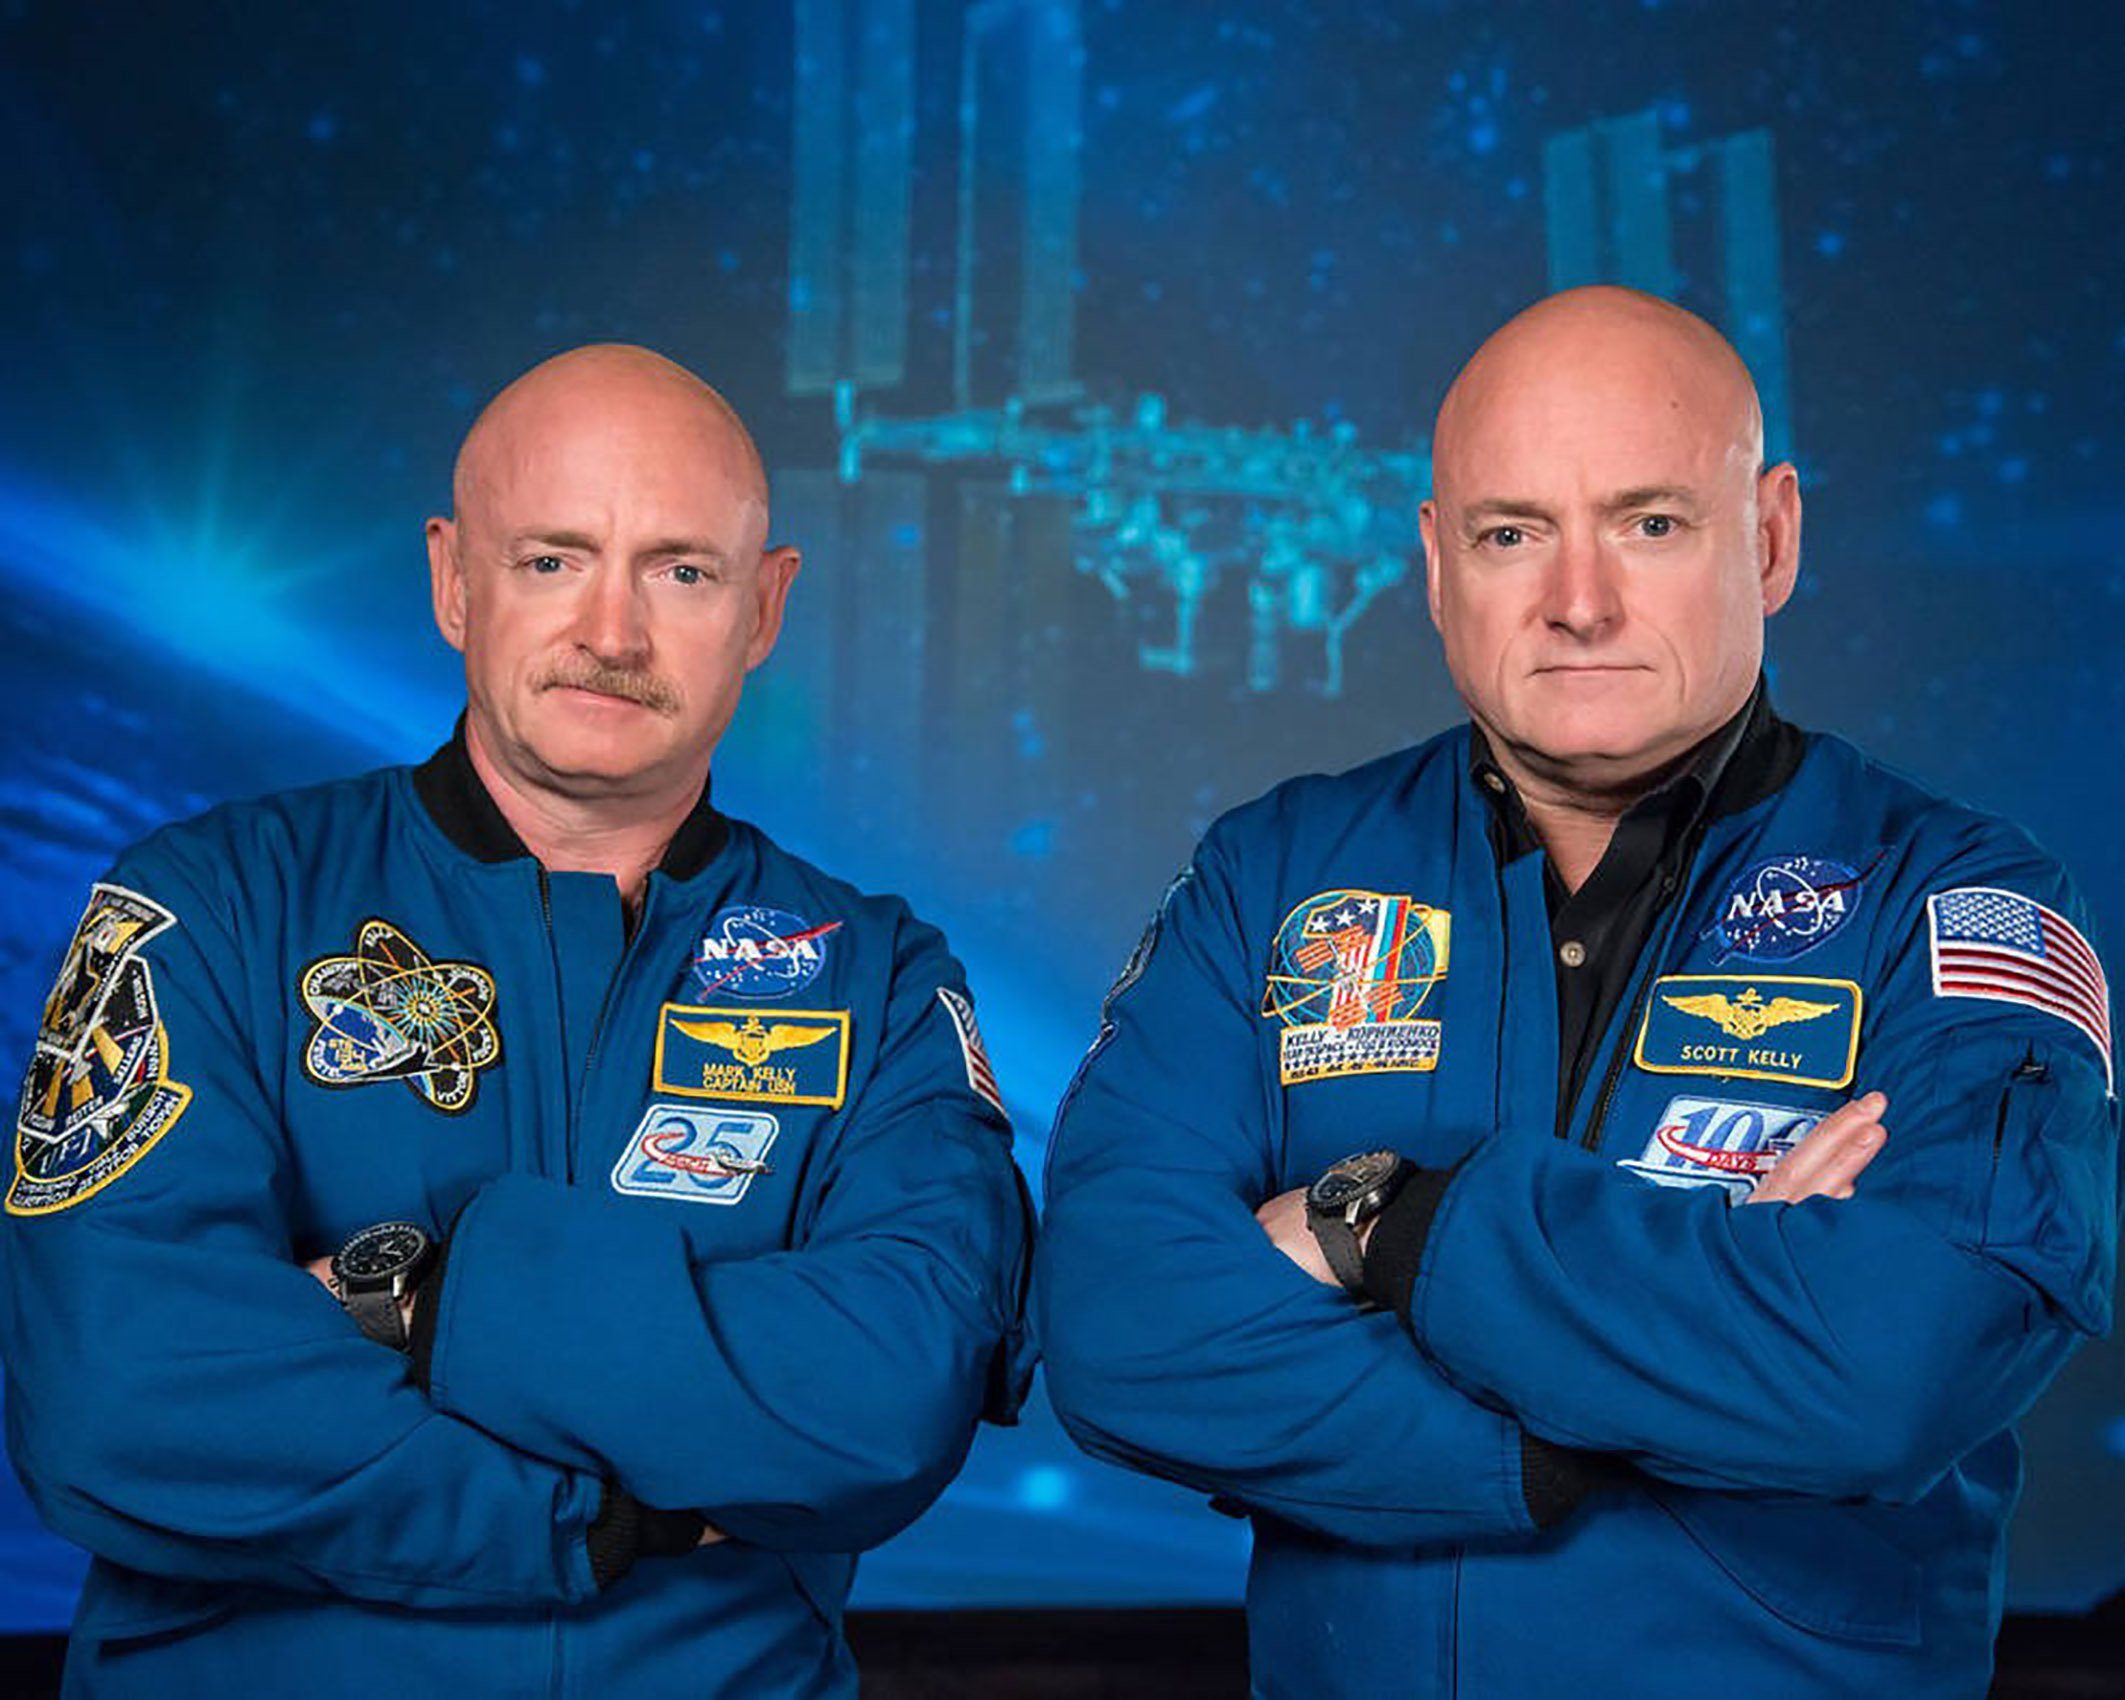 Recent photo released by NASA shows former astronaut Scott Kelly (R), who was the Expedition 45/46 commander during his one-year mission aboard the International Space Station, along with his twin brother, former astronaut Mark Kelly (L). - The Twins Study, by the Journal Science, is helping scientists better understand the impacts of spaceflight on the human body through the study of identical twins. Retired astronaut Scott Kelly spent 340 days in low-Earth orbit aboard the International Space Station while retired astronaut Mark Kelly, his identical twin, remained on Earth. The twins genetic similarity provided scientists with a reduced number of variables and an ideal control group, both important to scientific investigation. (Photo by Robert MARKOWITZ / NASA / AFP)ROBERT MARKOWITZ/AFP/Getty Images